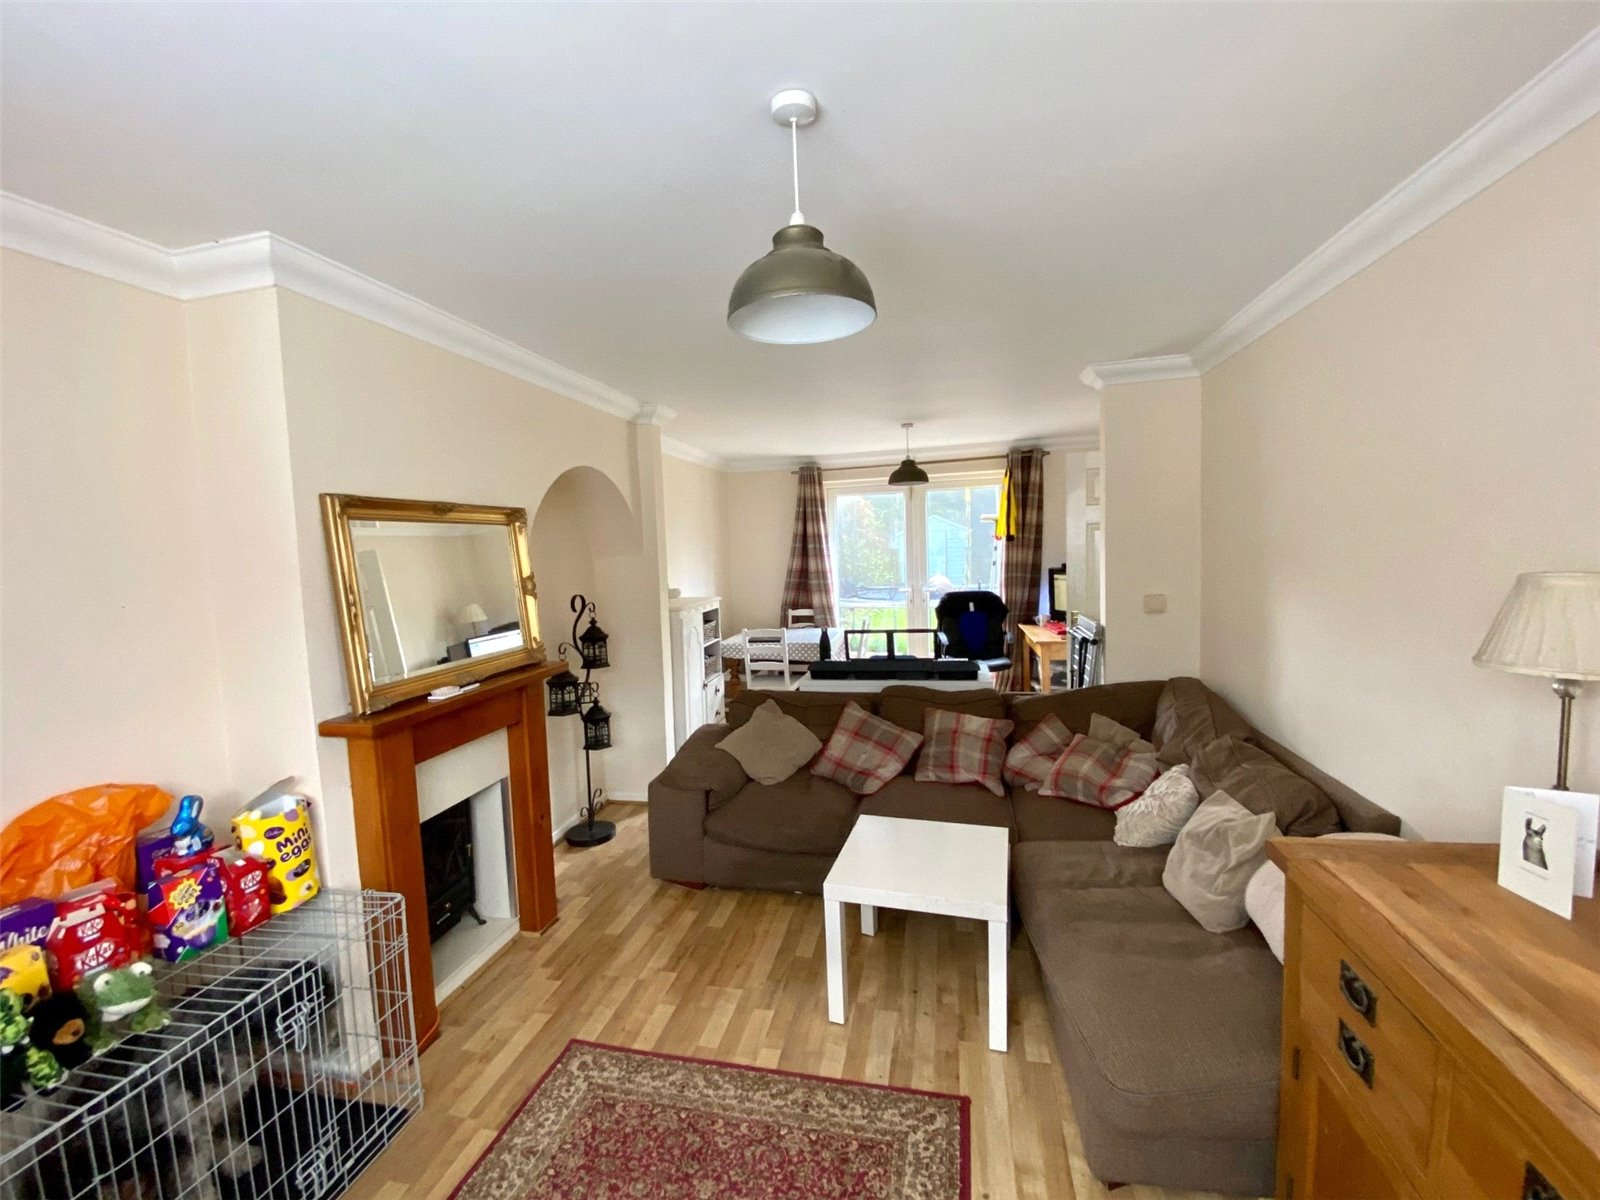 3 bed house to rent in Bricket Wood, AL2 3NB  - Property Image 3